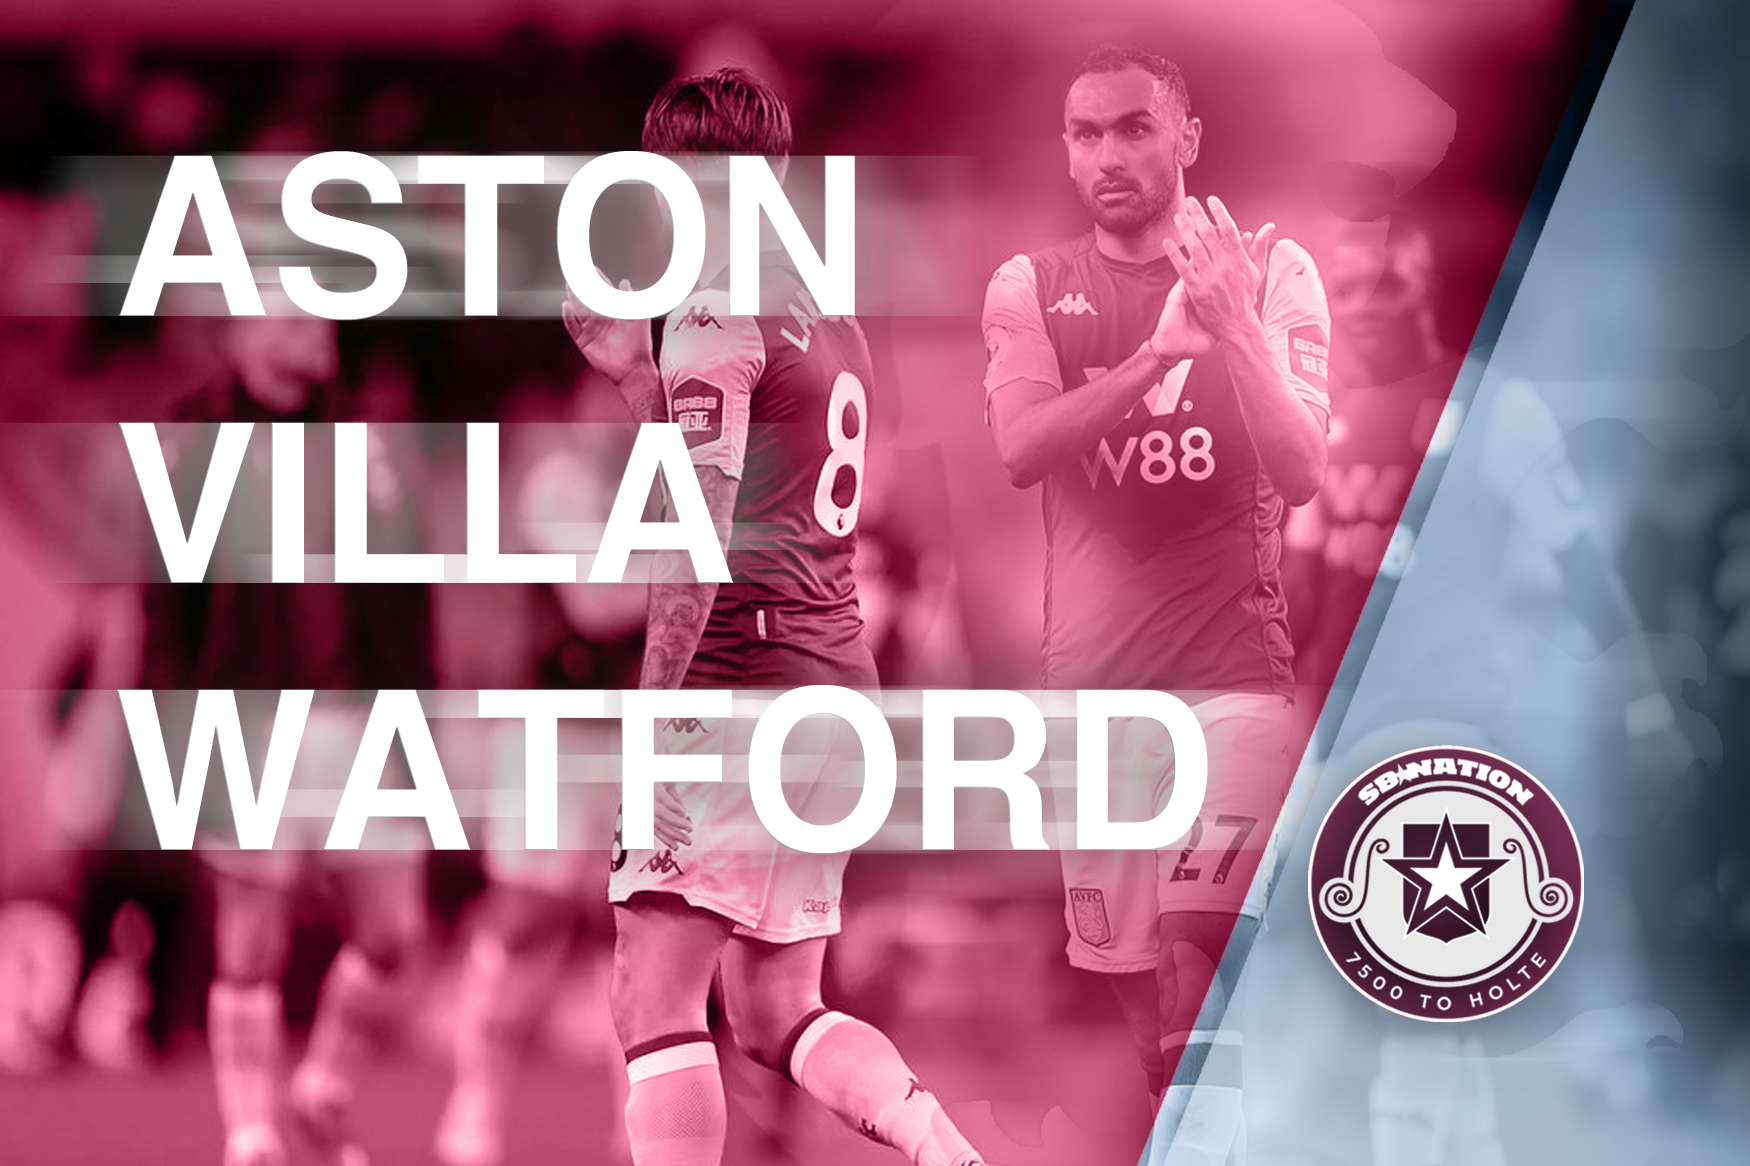 Aston Villa vs Watford: live stream info and how to watch Premier League online